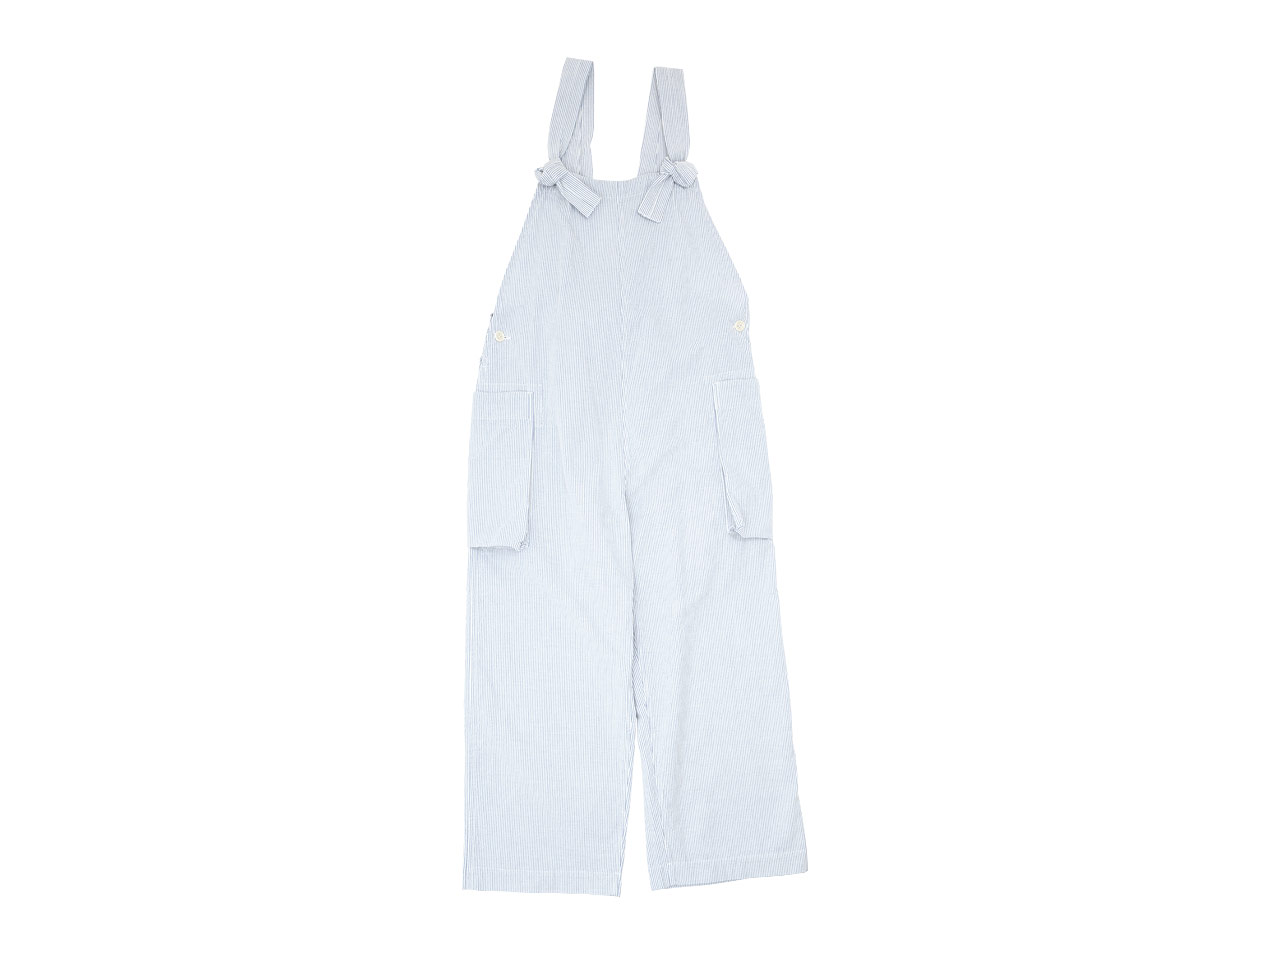 TOUJOURS Classic Overalls / Waist Overalls